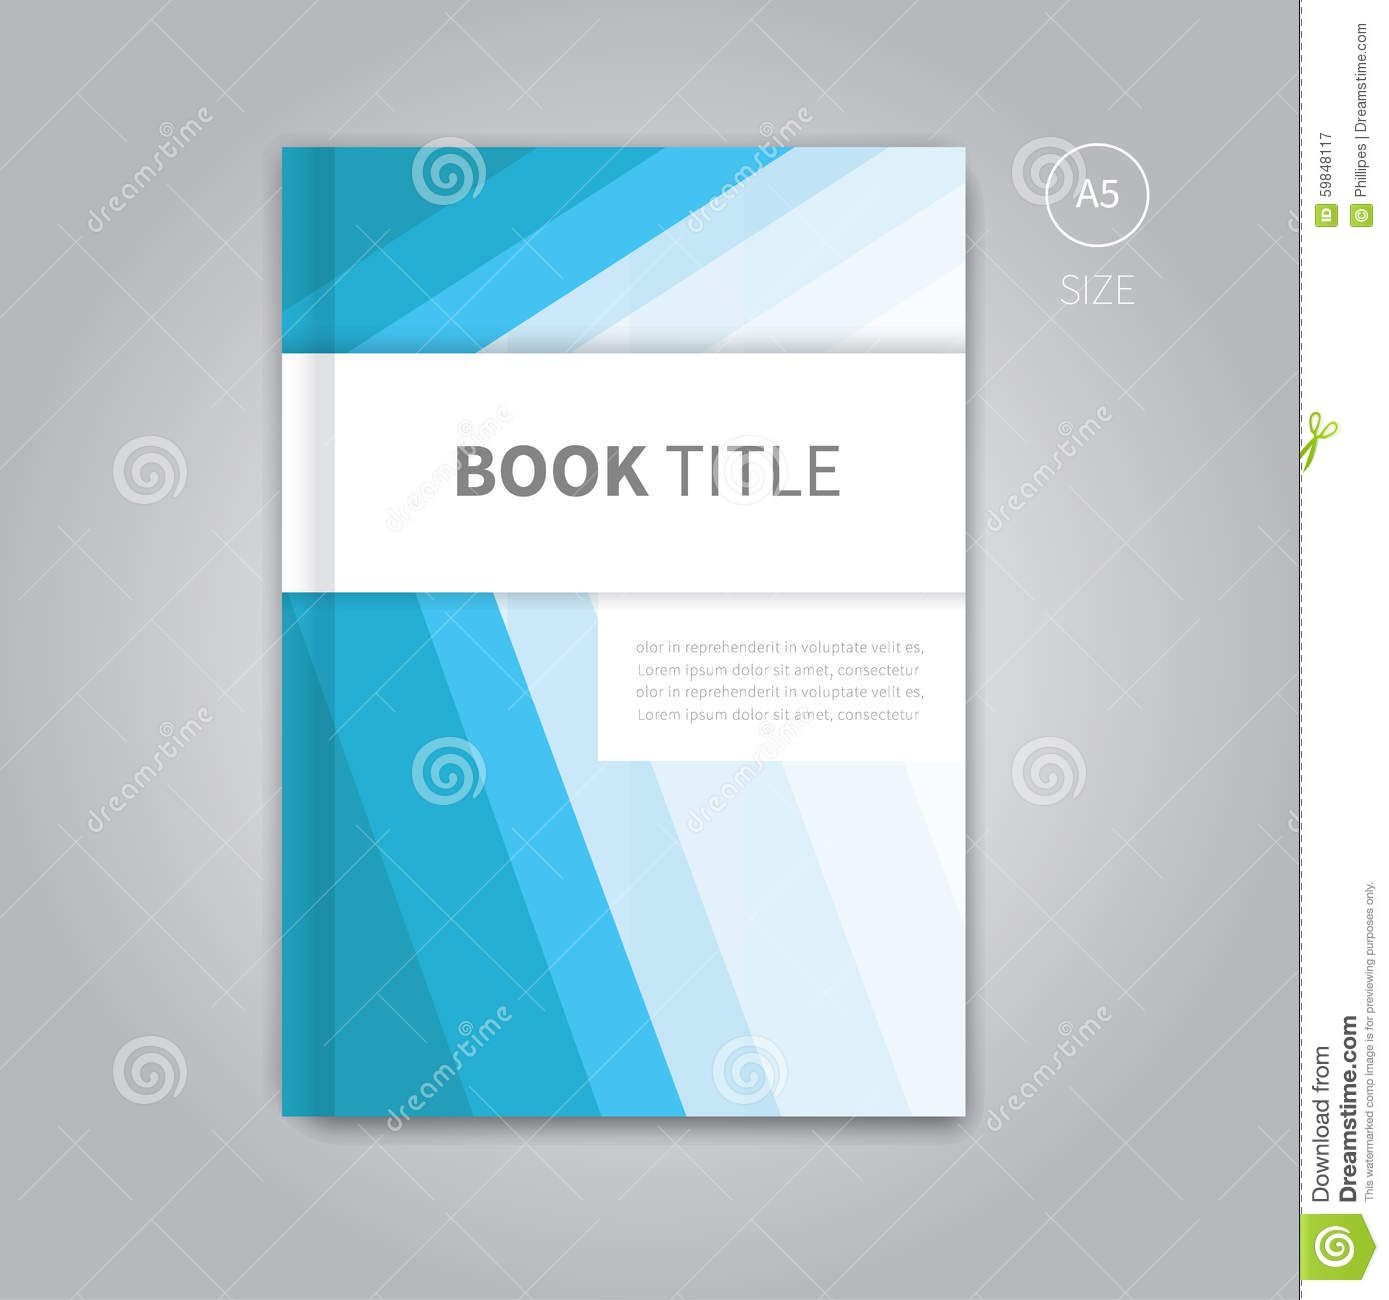 010 Staggering Book Cover Template Free Download Highest Clarity  Illustrator Design Vector IllustrationFull